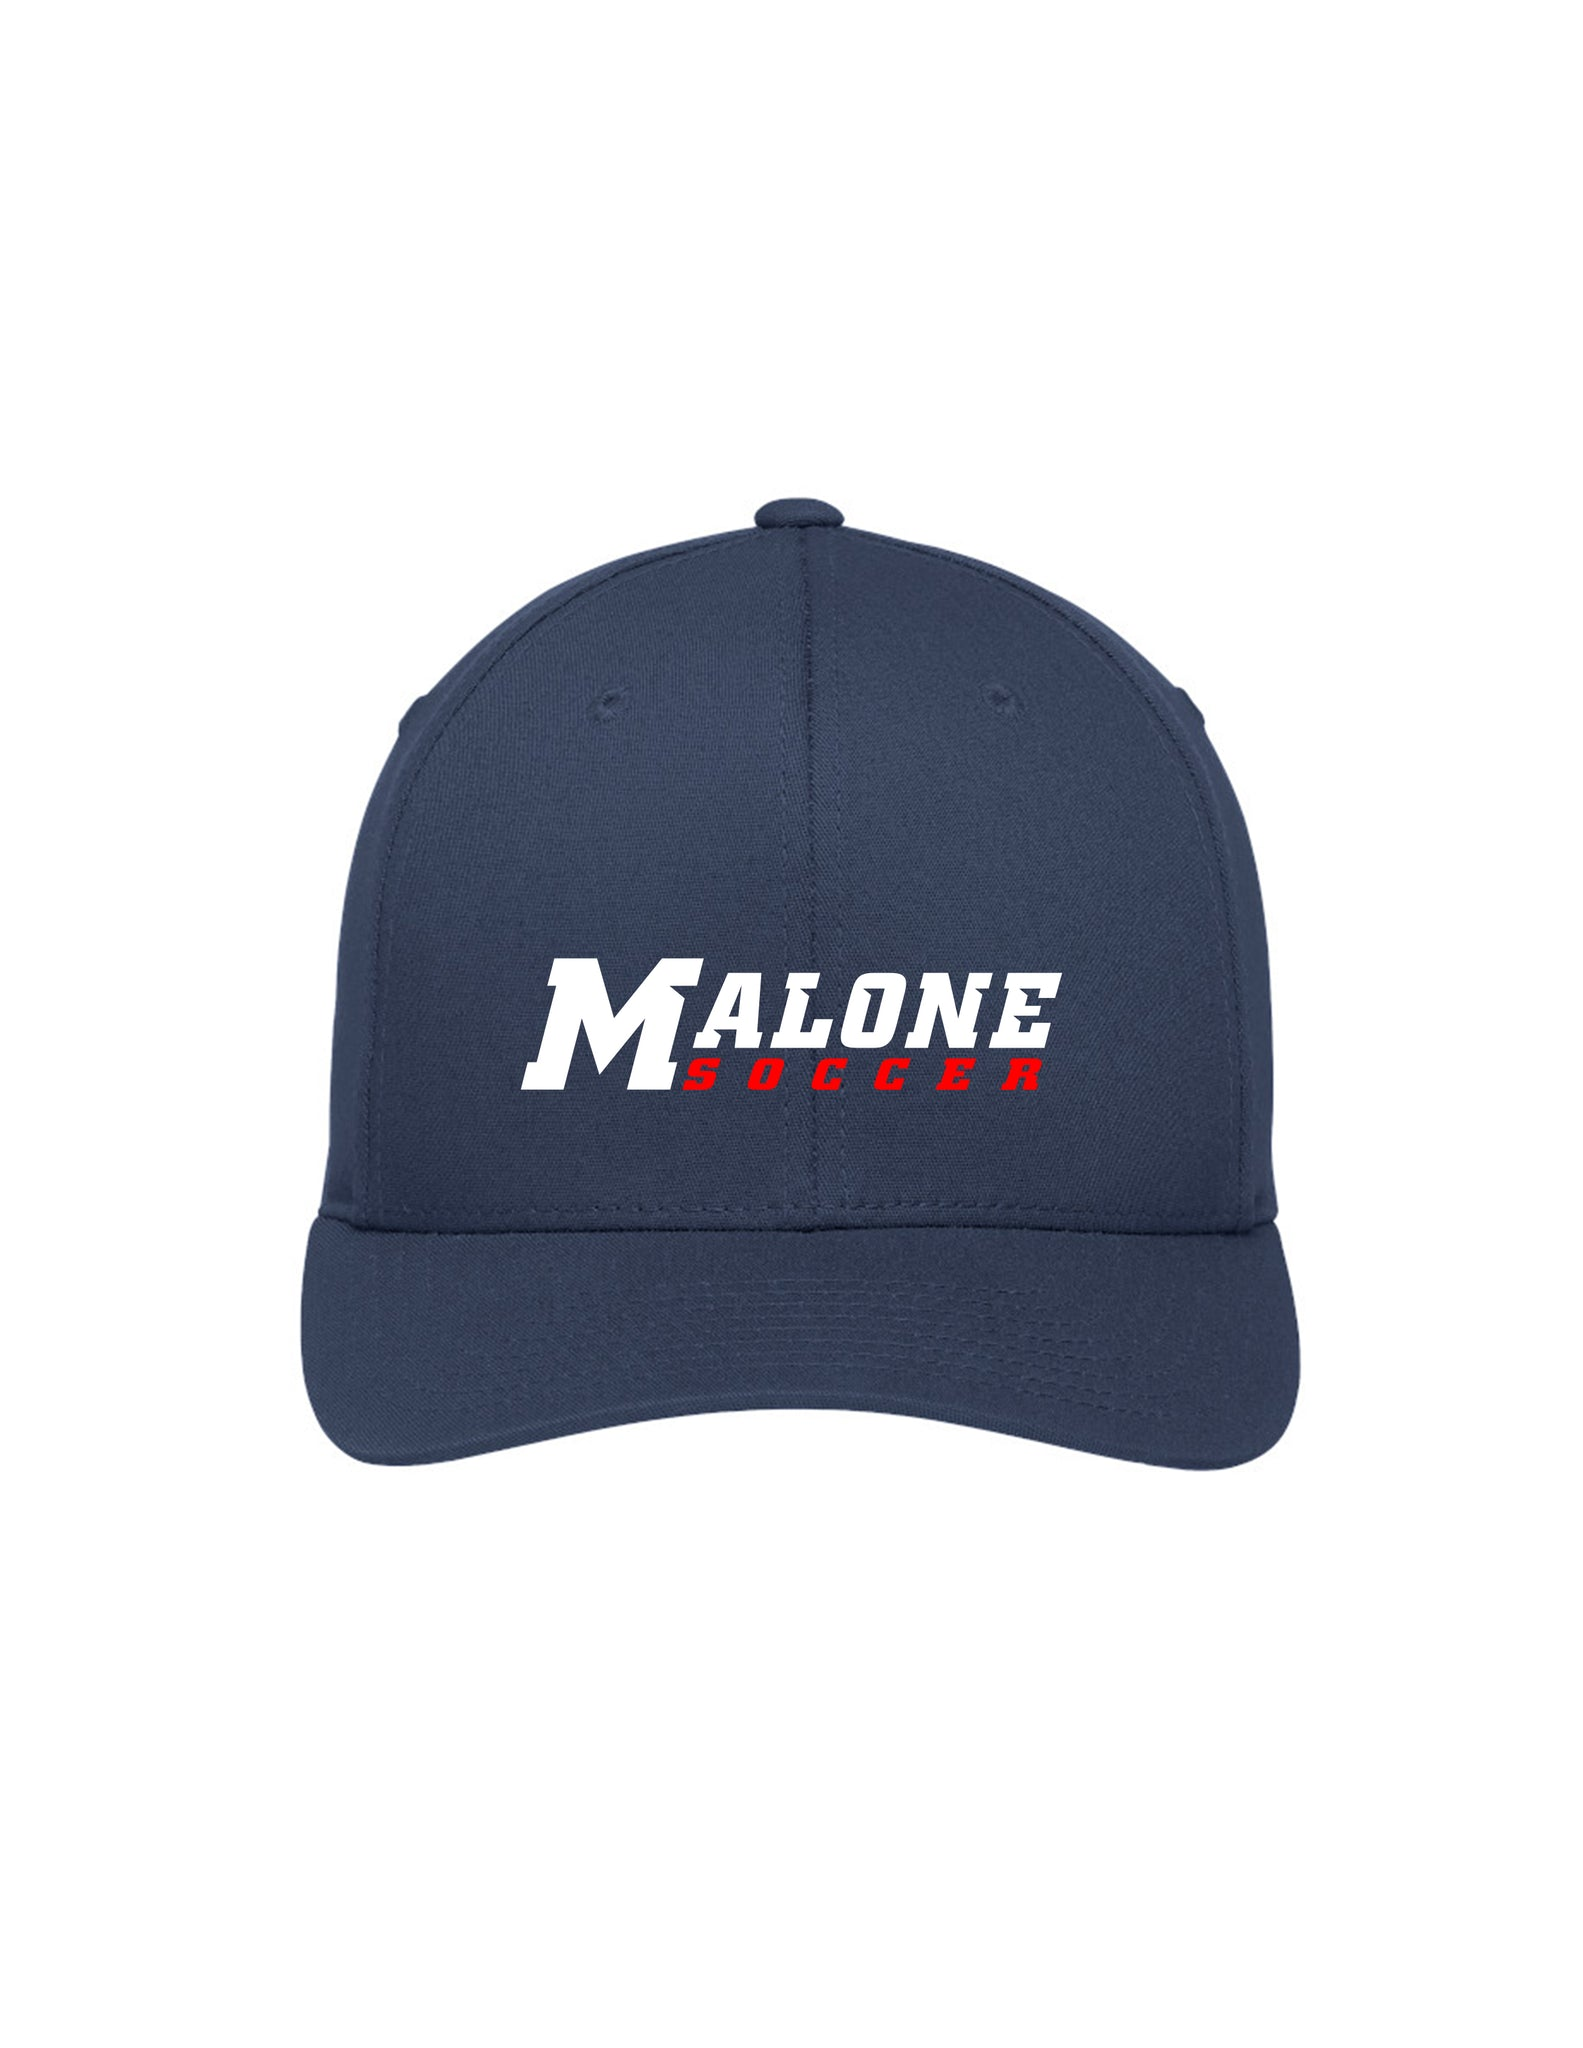 Malone Men's Soccer Hat